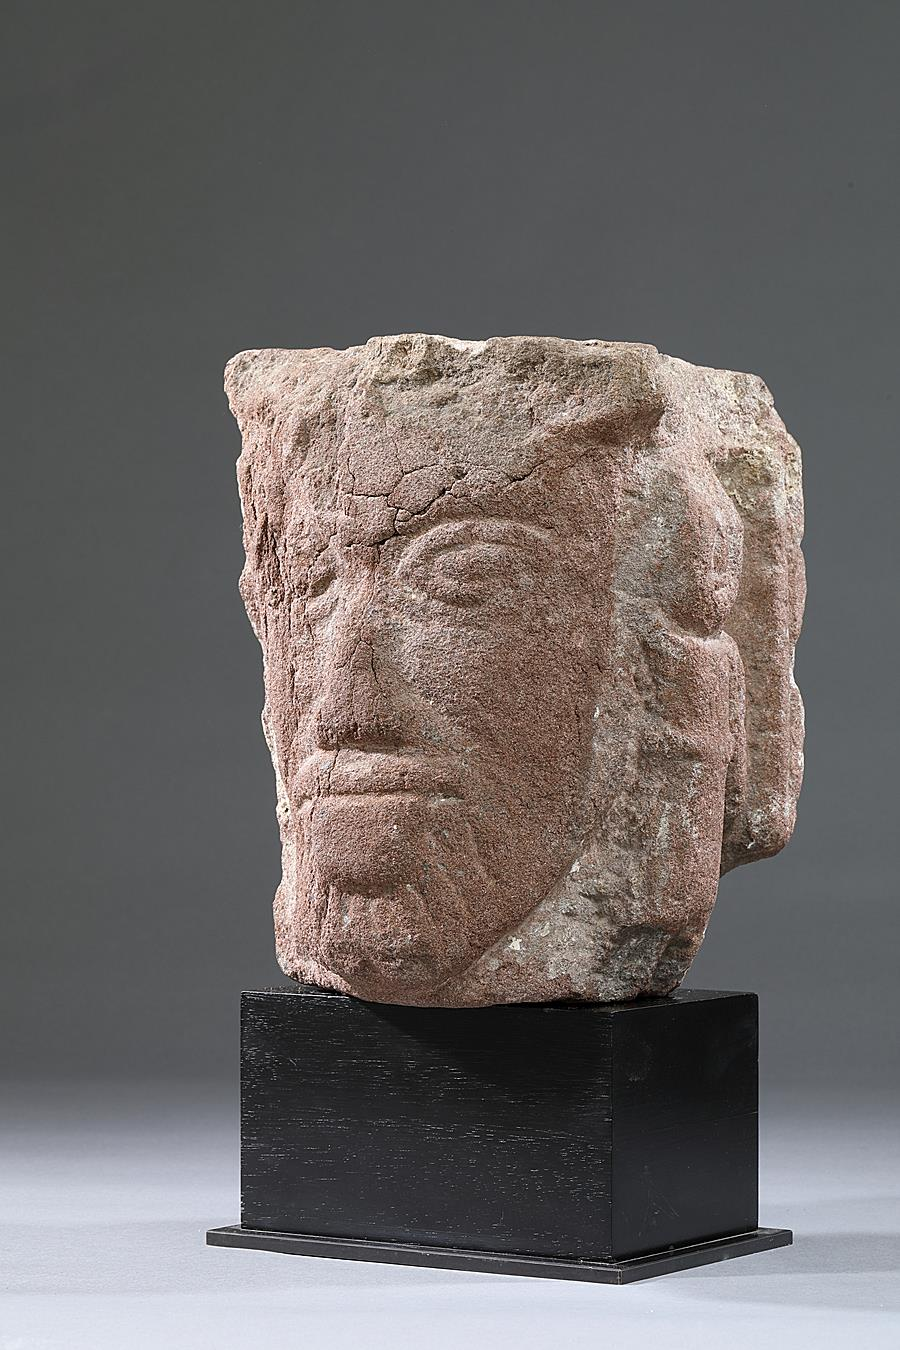 EARLY ROMANESQUE CORBEL  FROM STRASBOURG WITH HEAD OF A MAN AND TWO FIGURES